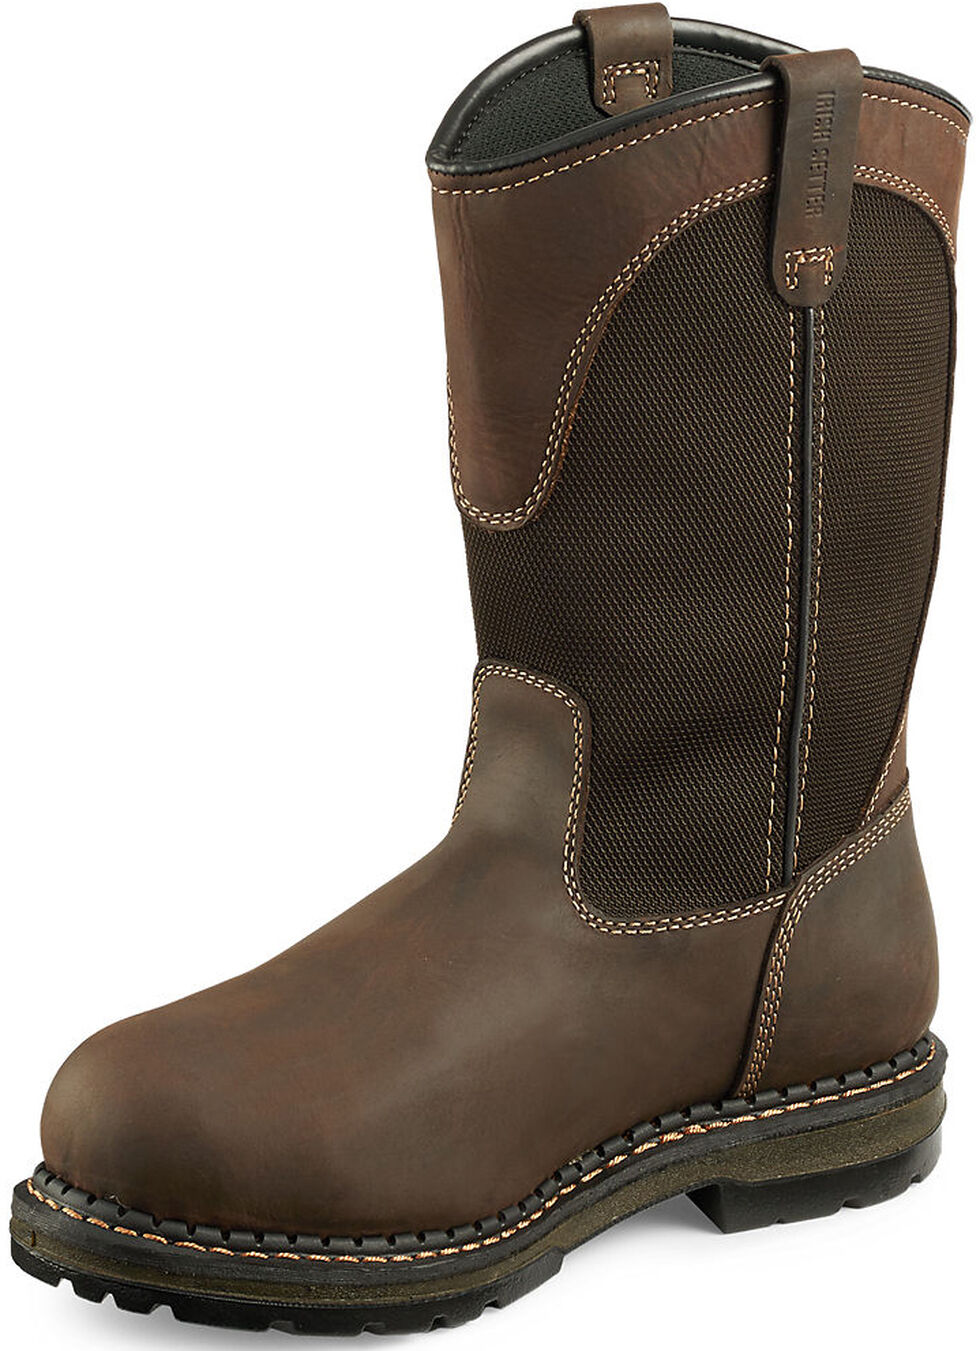 Irish Setter by Red Wing Men's Ramsey Work Boots - Soft Round Toe , Brown, hi-res